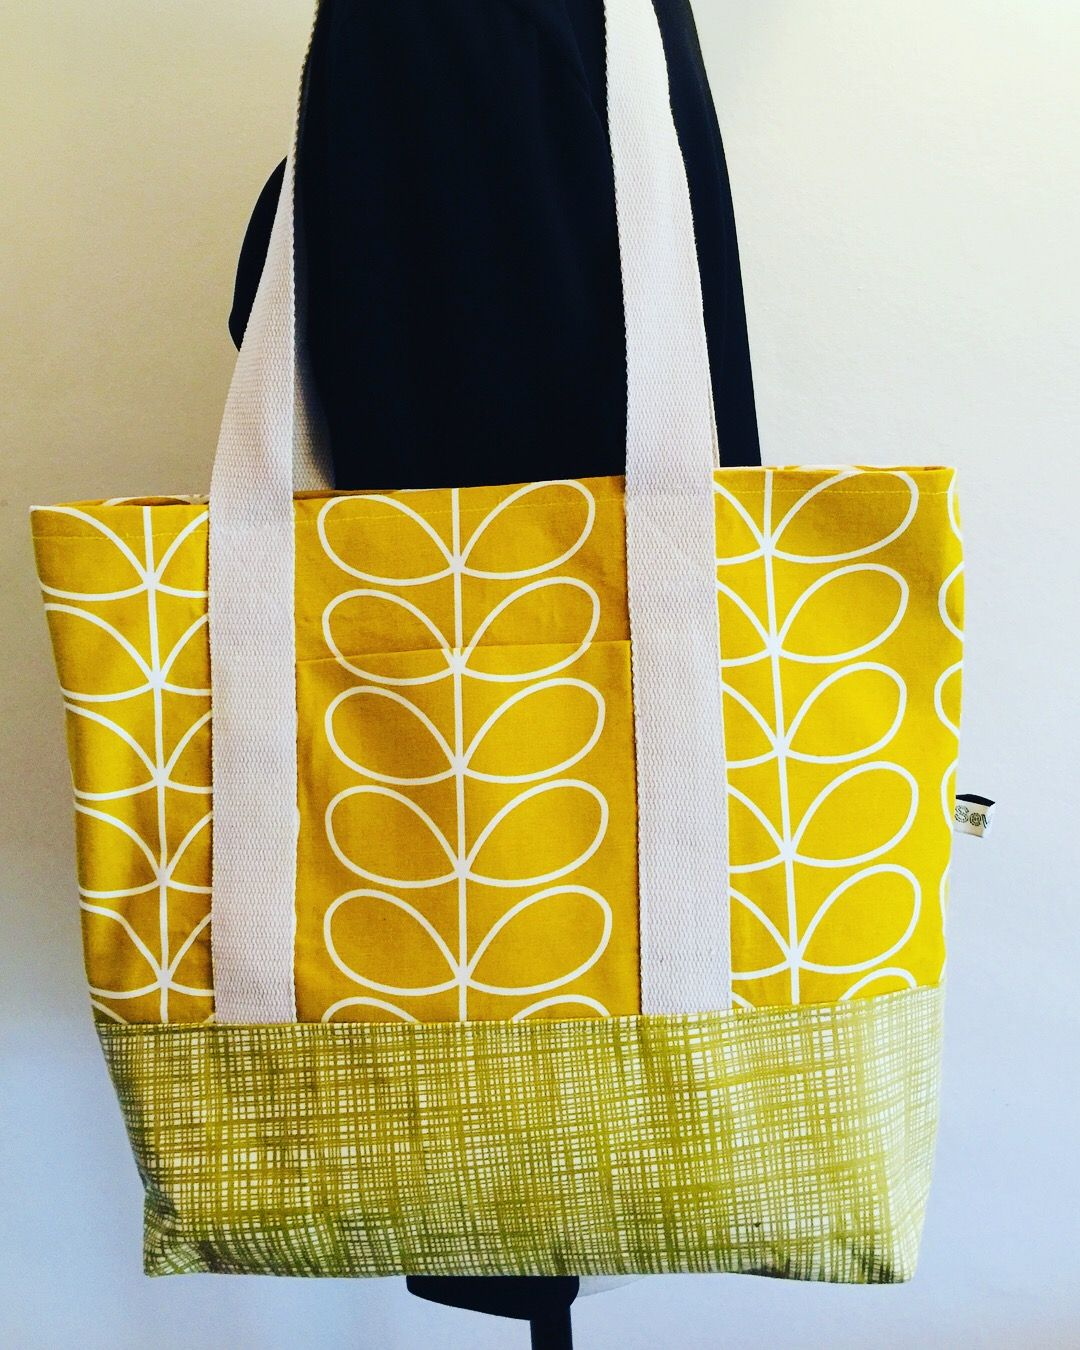 Itssewsimple Bag Making Course Artsdepot Finchley London